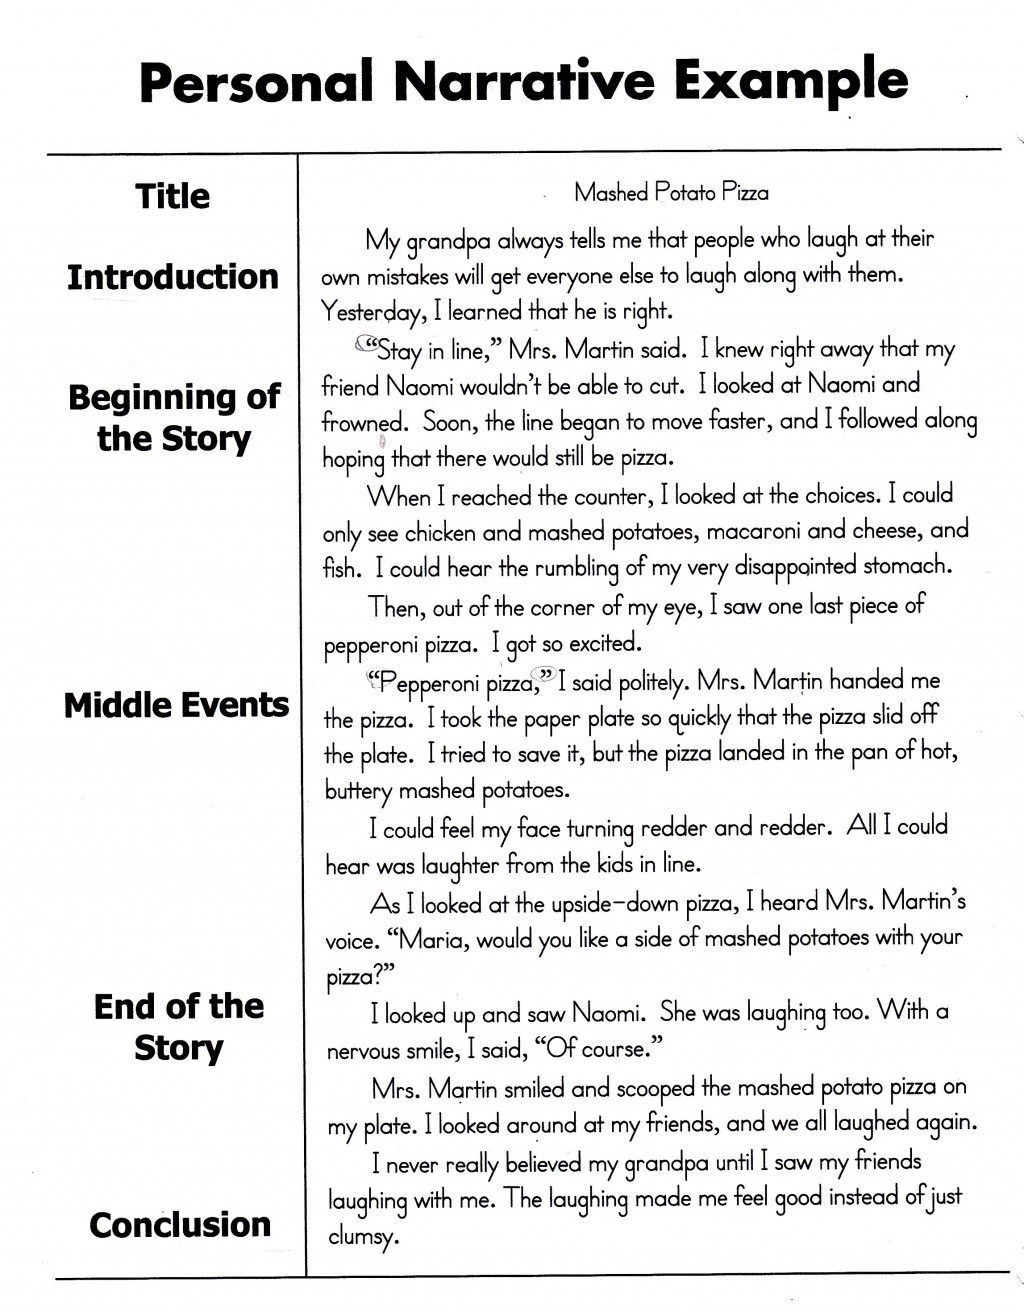 008 Narrative Essay Outline Example Impressive Doc Sample Large